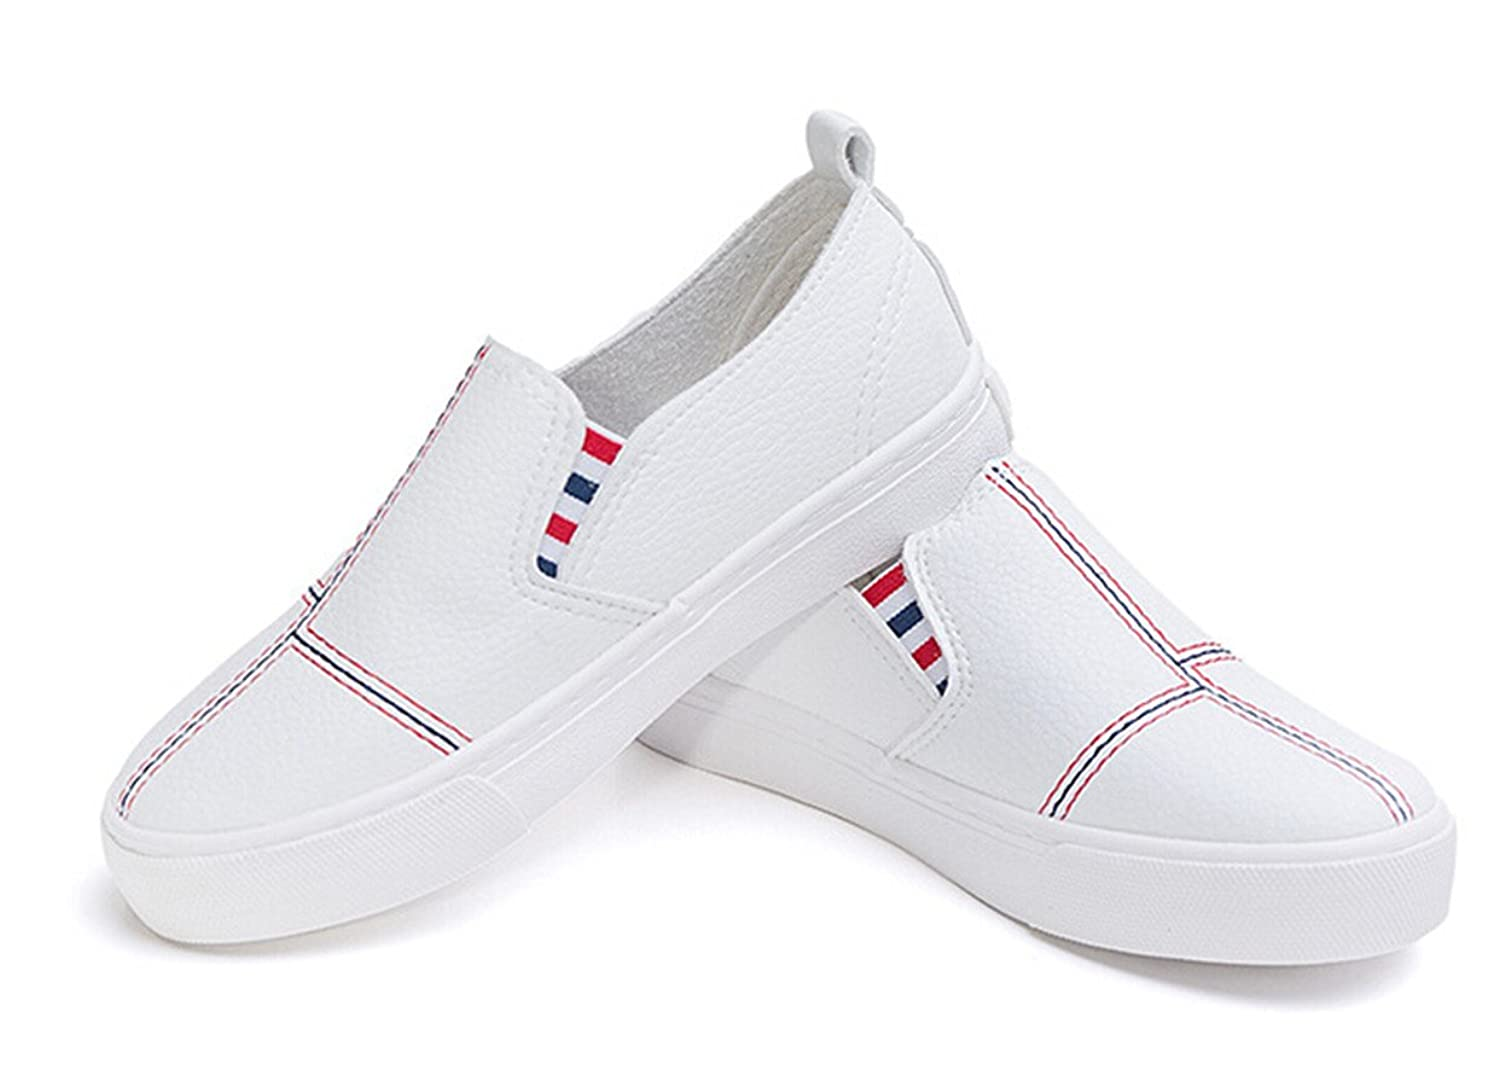 Bumud Little Kids Boys Girls Breathable Leather Loafer Slip-On Boat Dress  Shoes Sneakers (13 M US Little Kid, White): Amazon.ca: Shoes & Handbags